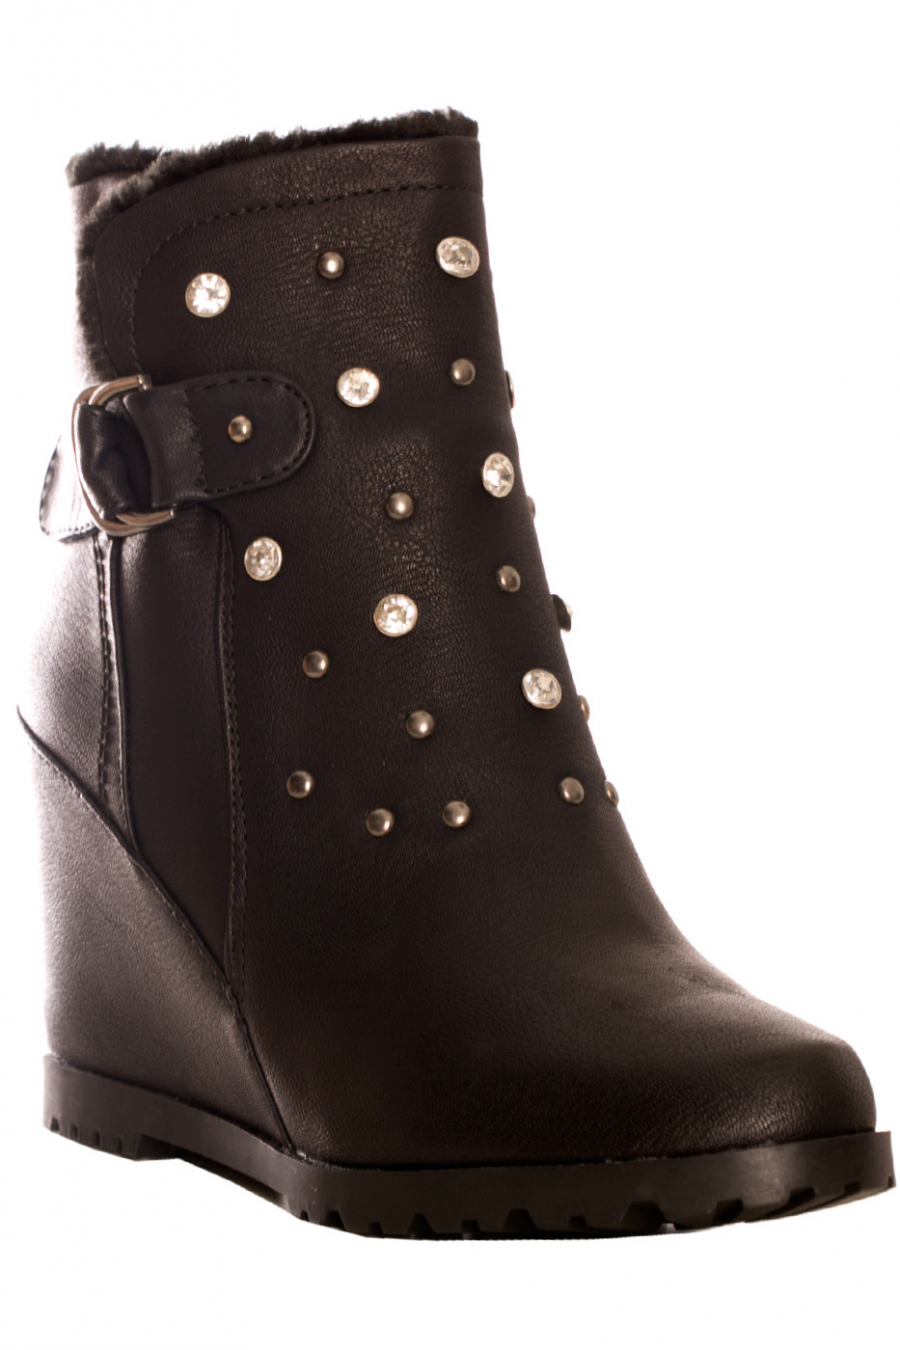 Black ankle boots with wedge heel with rhinestones on the front. EL027